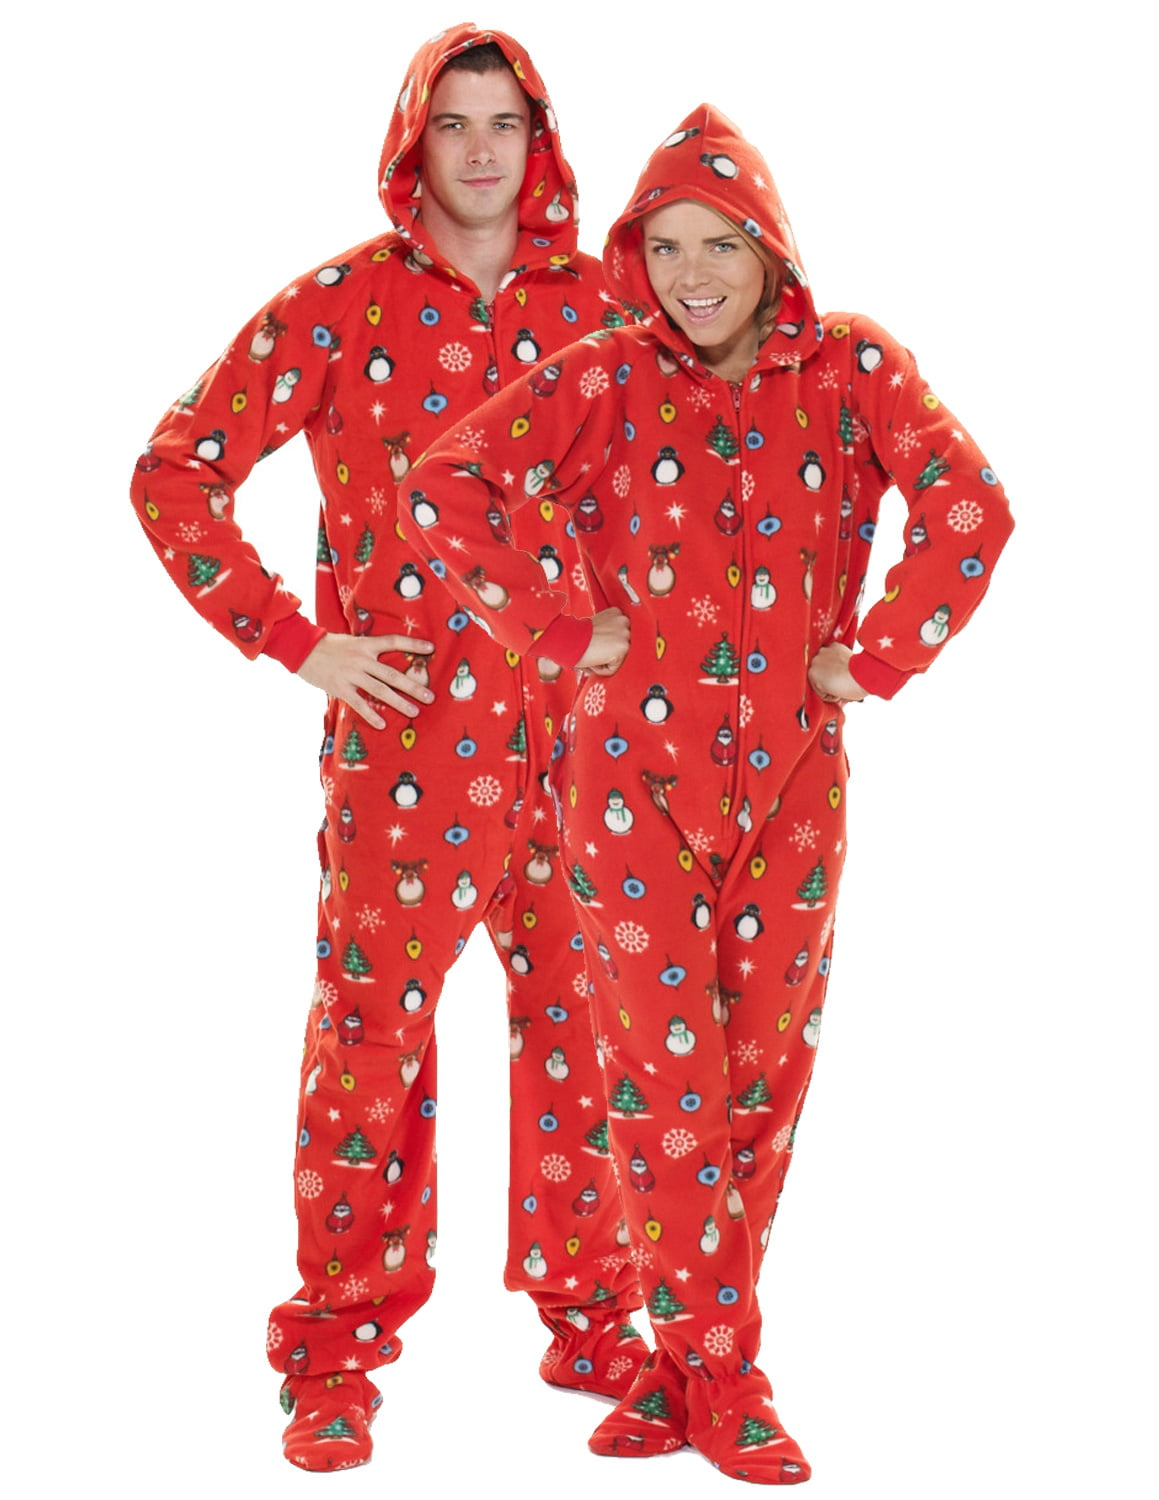 Christmas Pajama Onesies.Footed Pajamas Holly Jolly Christmas Adult Hoodie Drop Seat